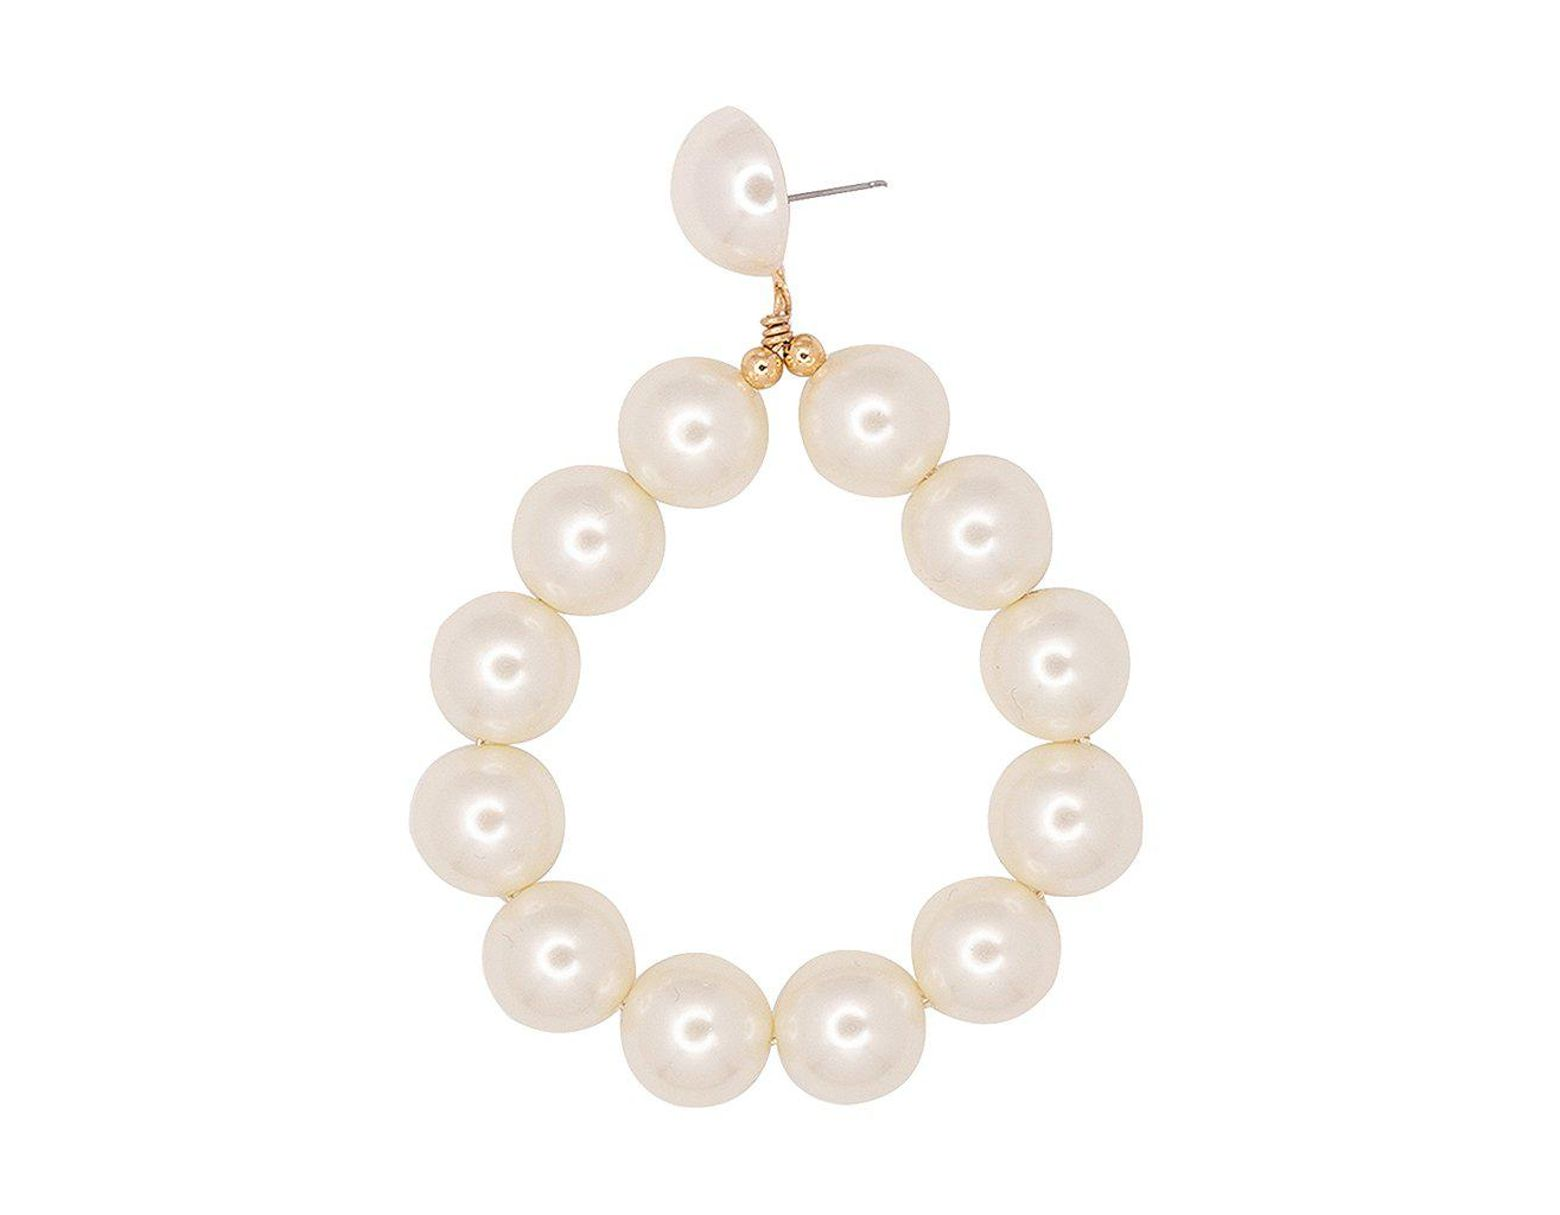 e405e5aab Kenneth Jay Lane Gold And White Pearl Ball Hoop Pierced Earrings in  Metallic - Lyst